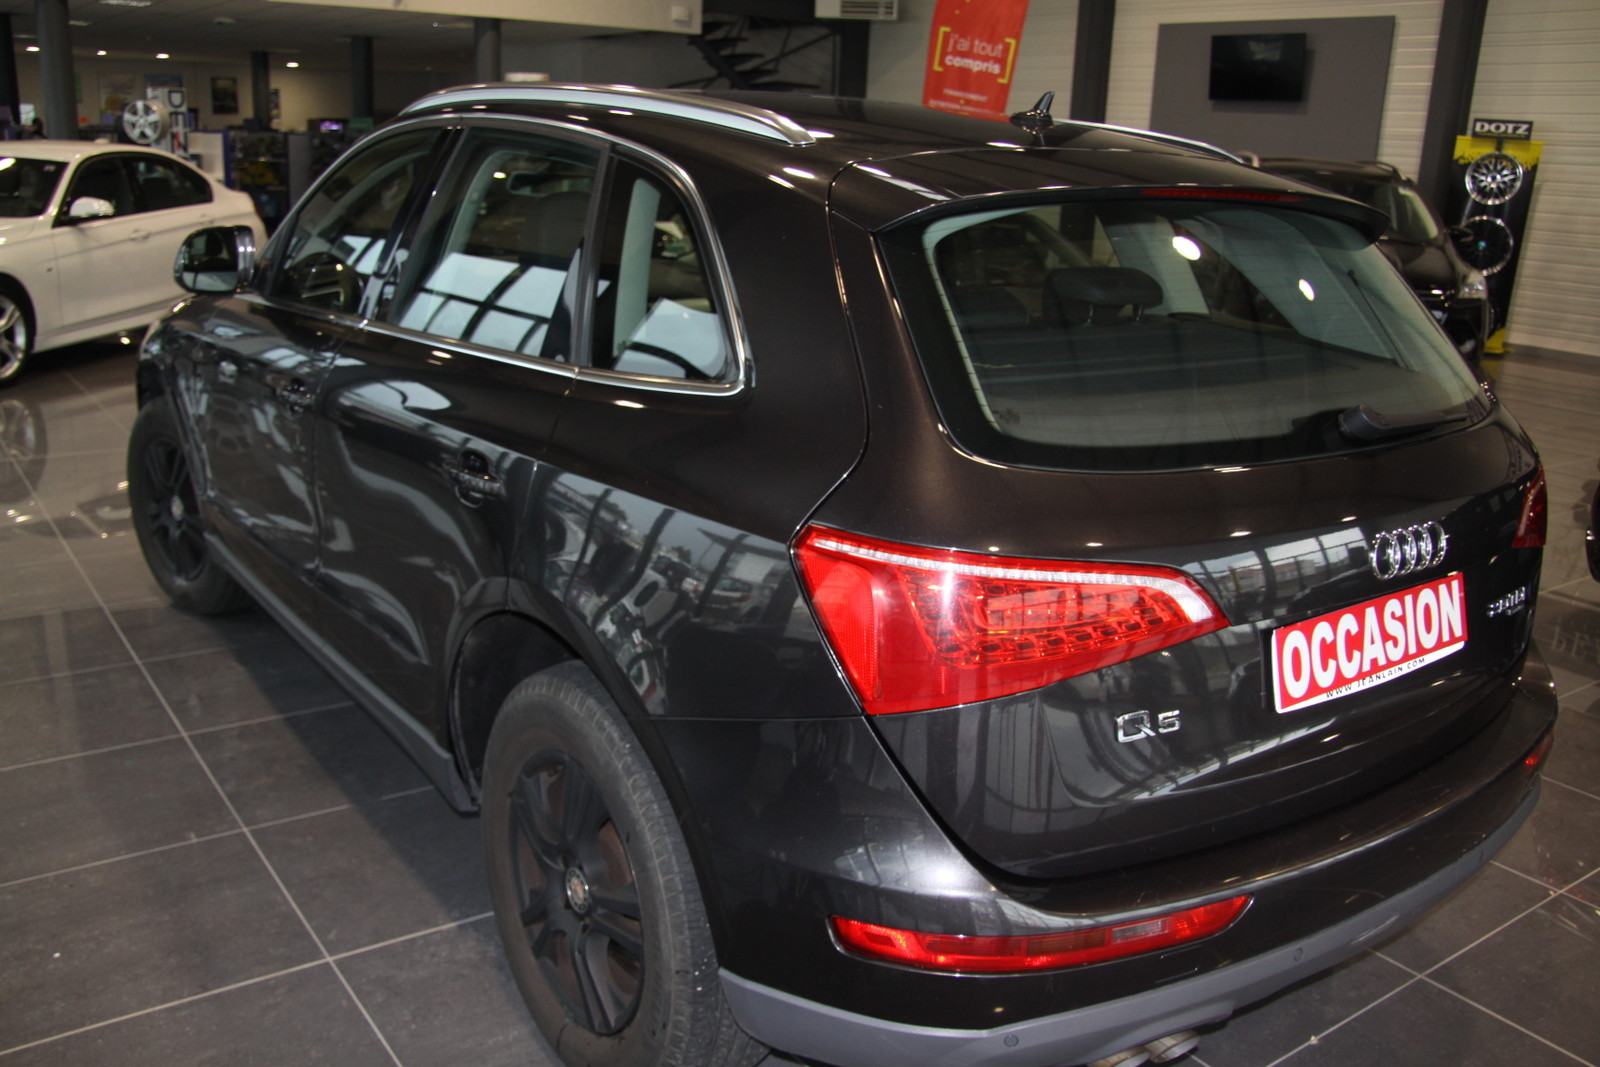 audi q5 quattro 2 0 tdi 170 kab auto centre auto de borly 74 cranves sales annemasse. Black Bedroom Furniture Sets. Home Design Ideas